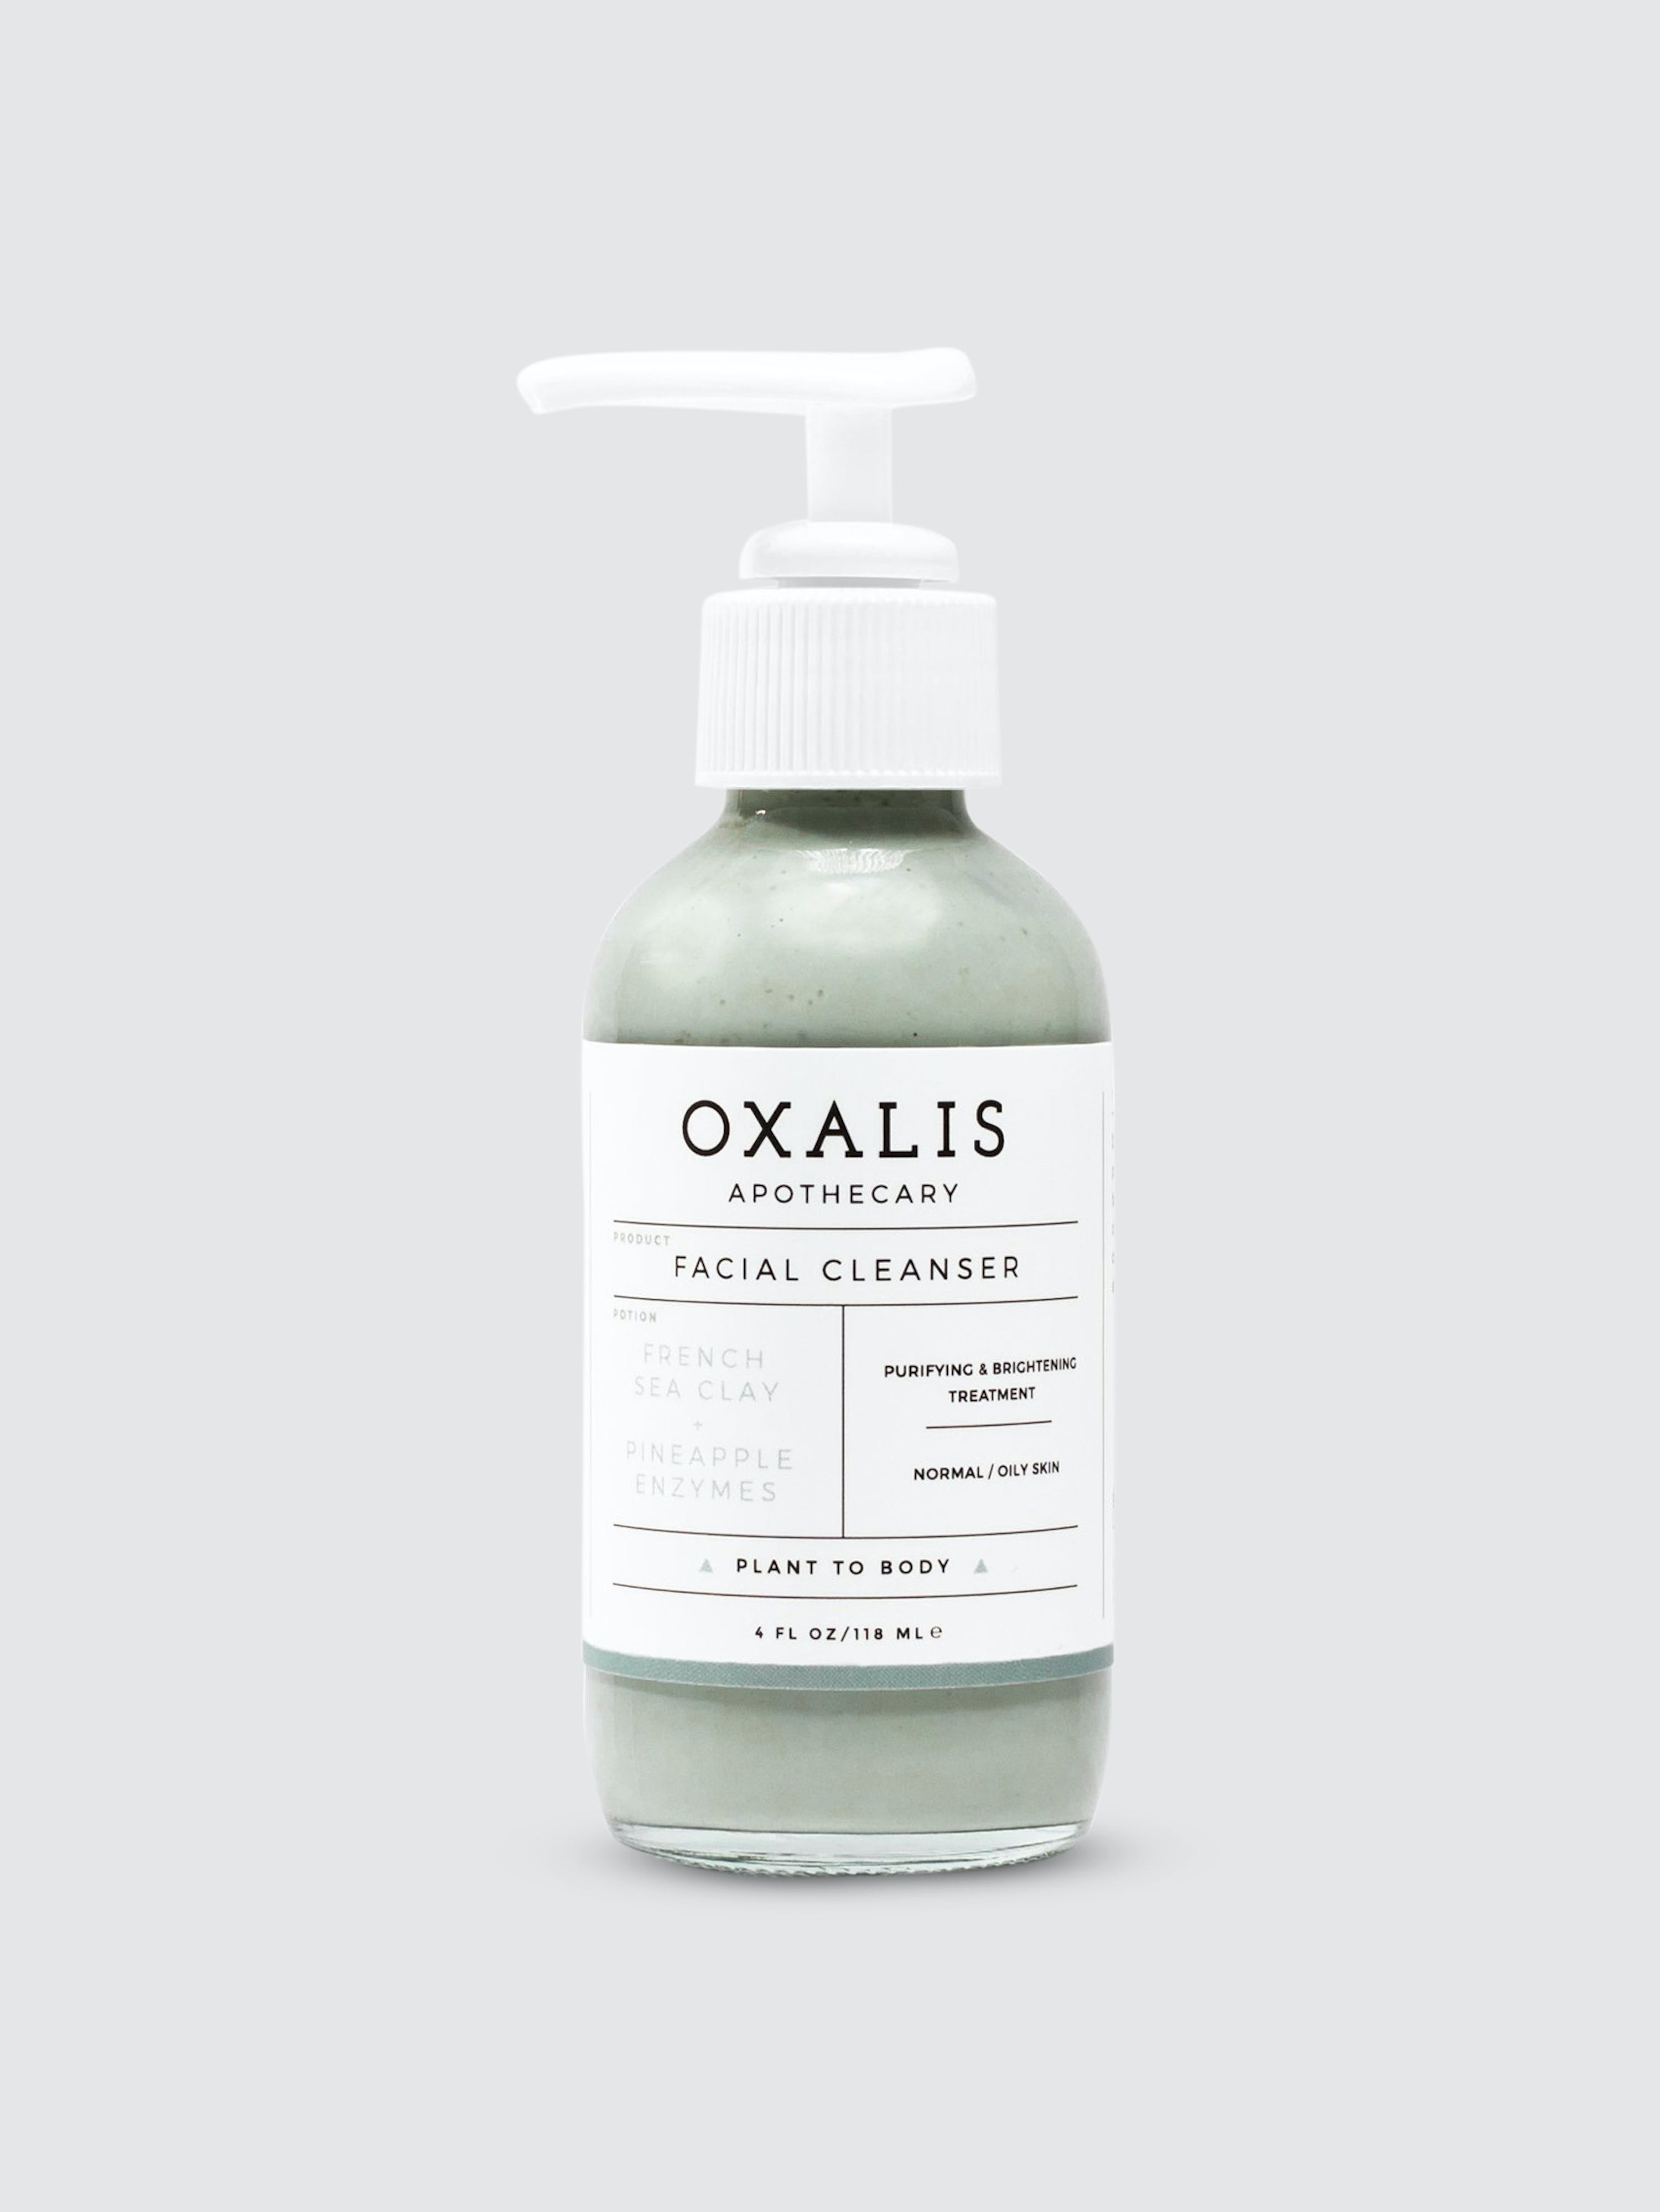 Oxalis Apothecary Facial Cleanser | French Sea Clay + Pineapple Enzymes